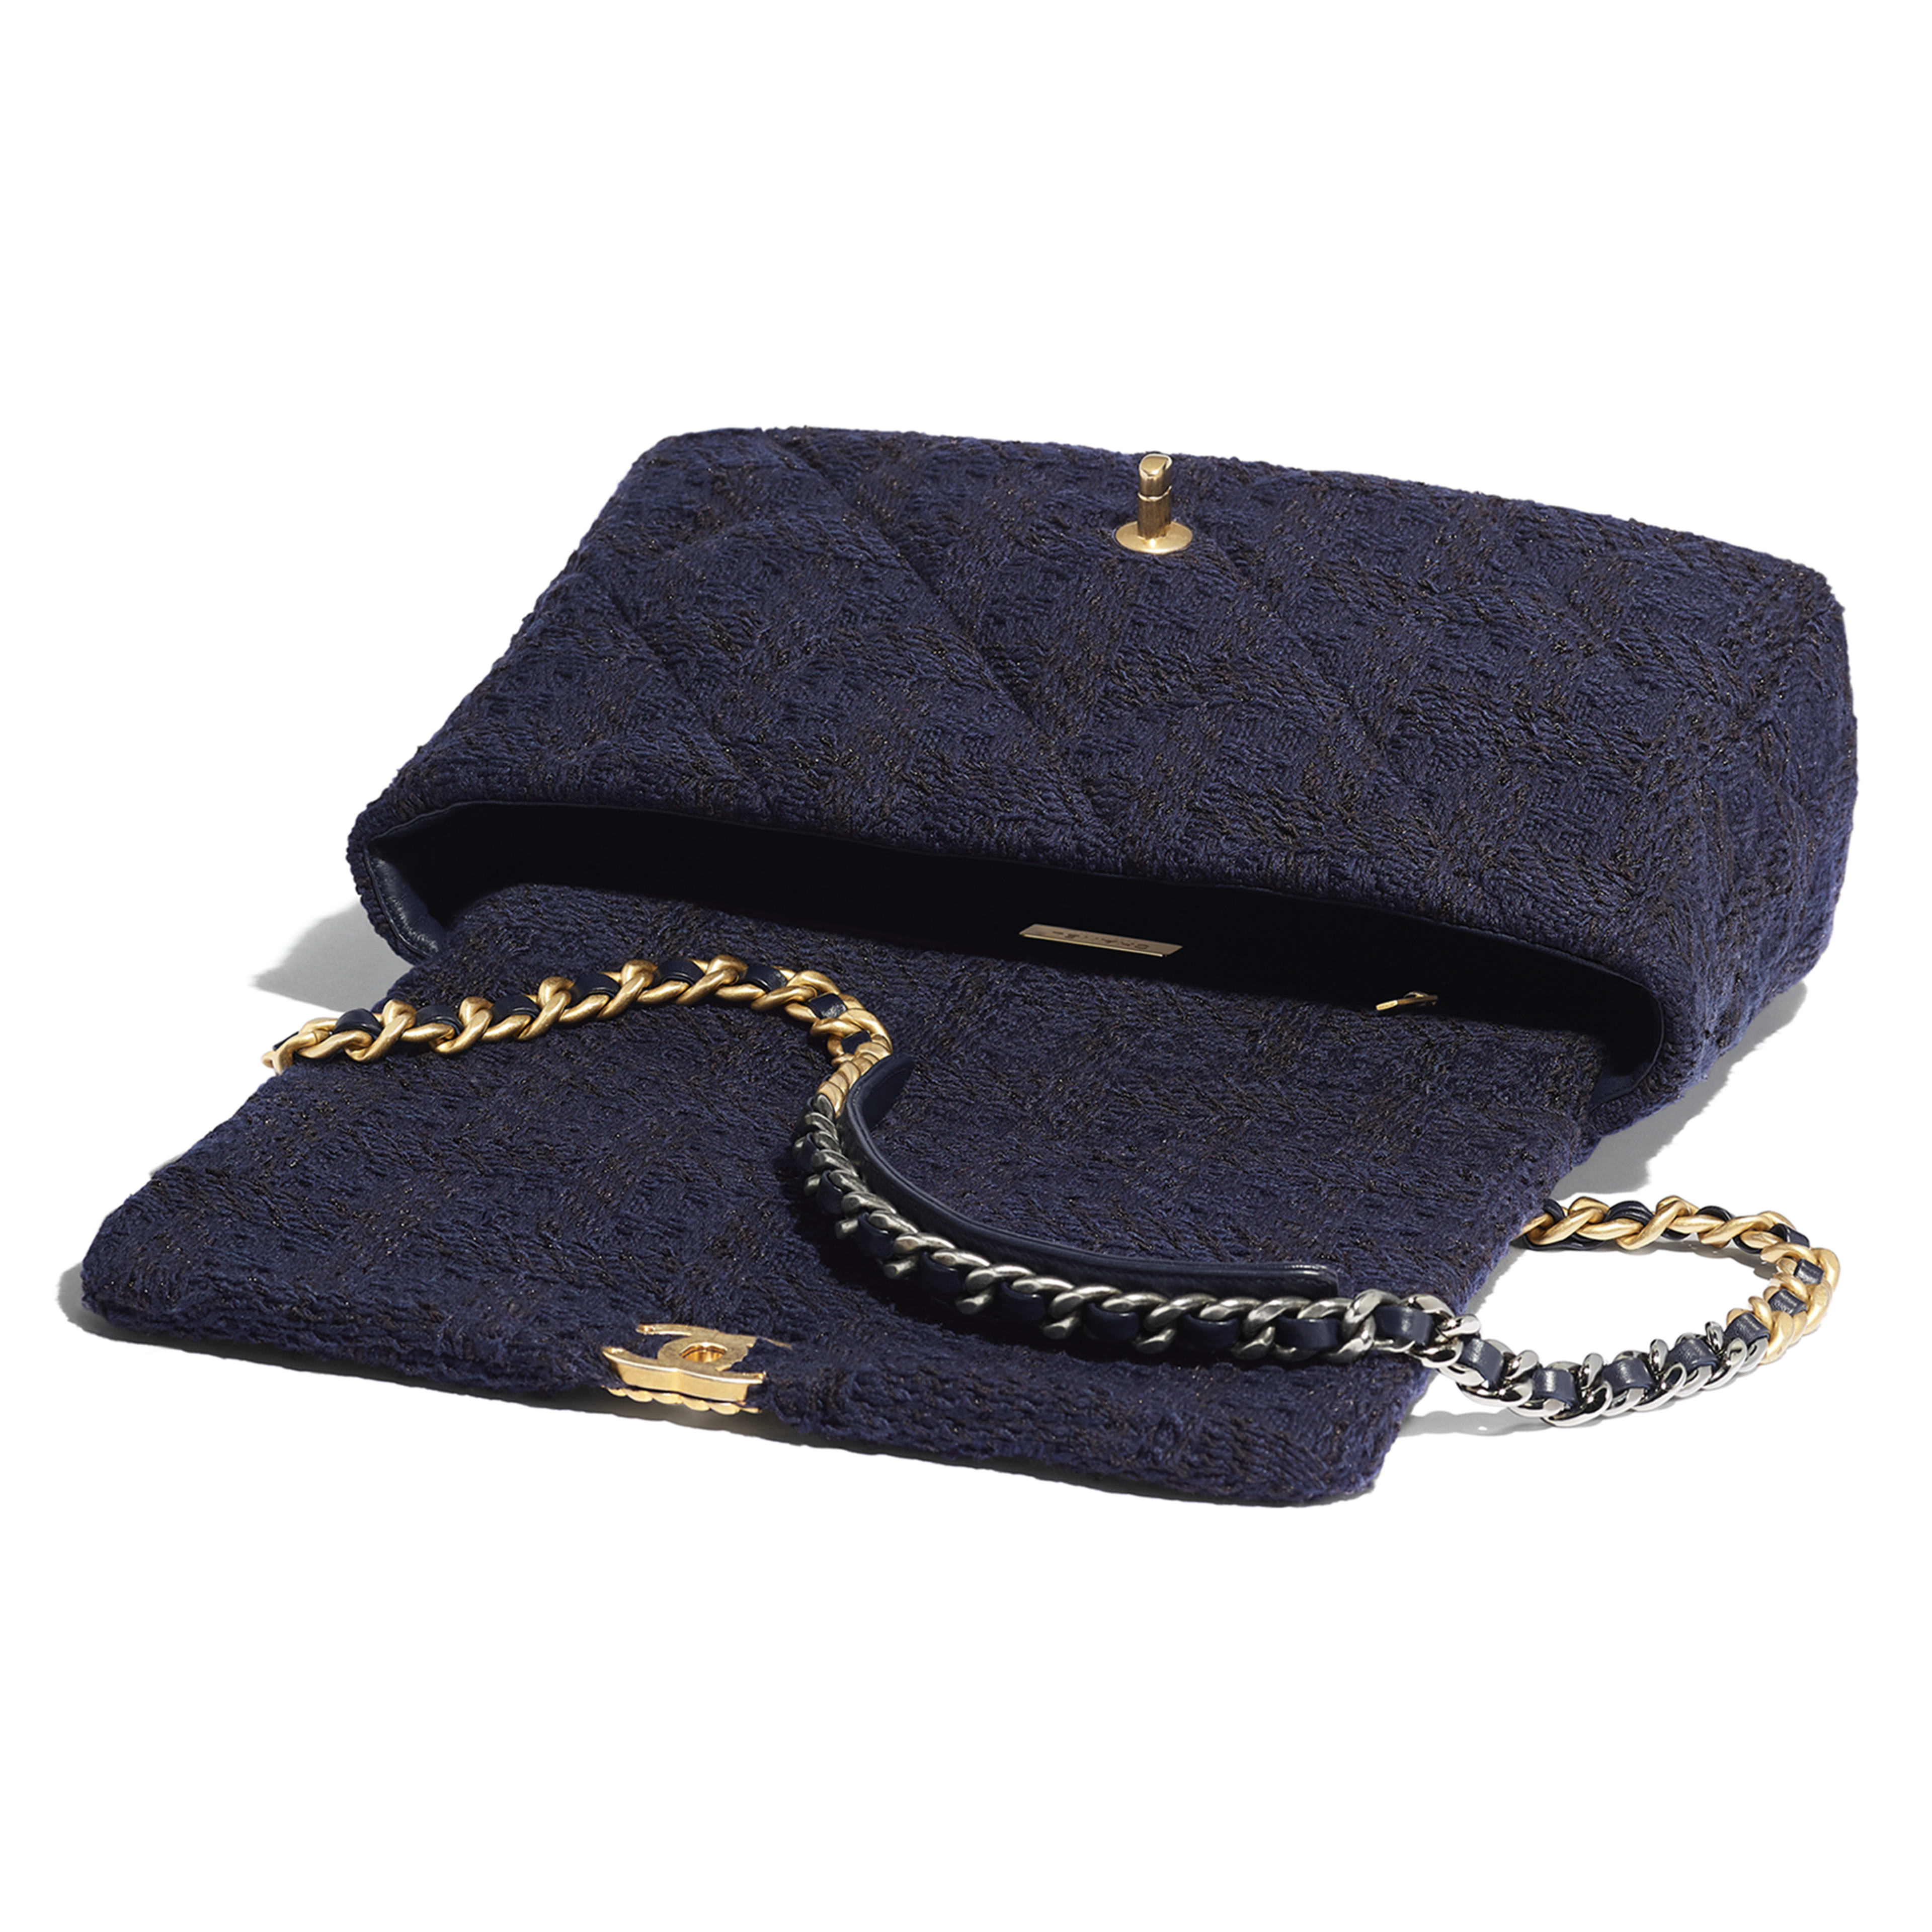 CHANEL 19 Maxi Flap Bag - Navy Blue & Black - Wool Tweed, Gold-Tone, Silver-Tone & Ruthenium-Finish Metal - Other view - see full sized version